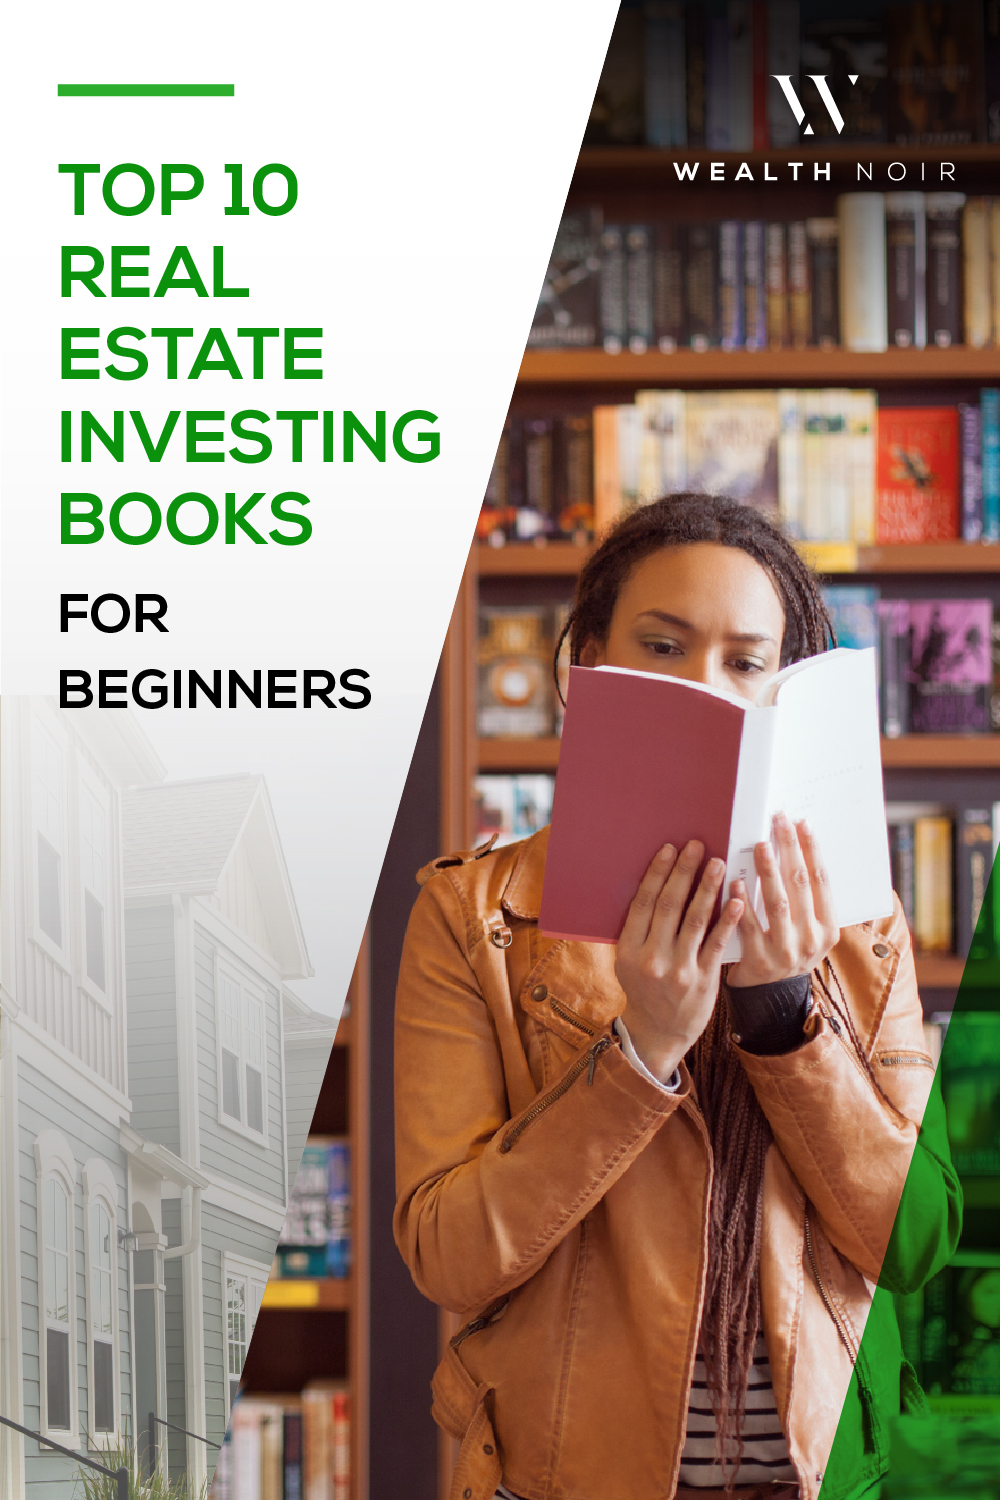 Top 10 Real Estate Investing Books for Beginners